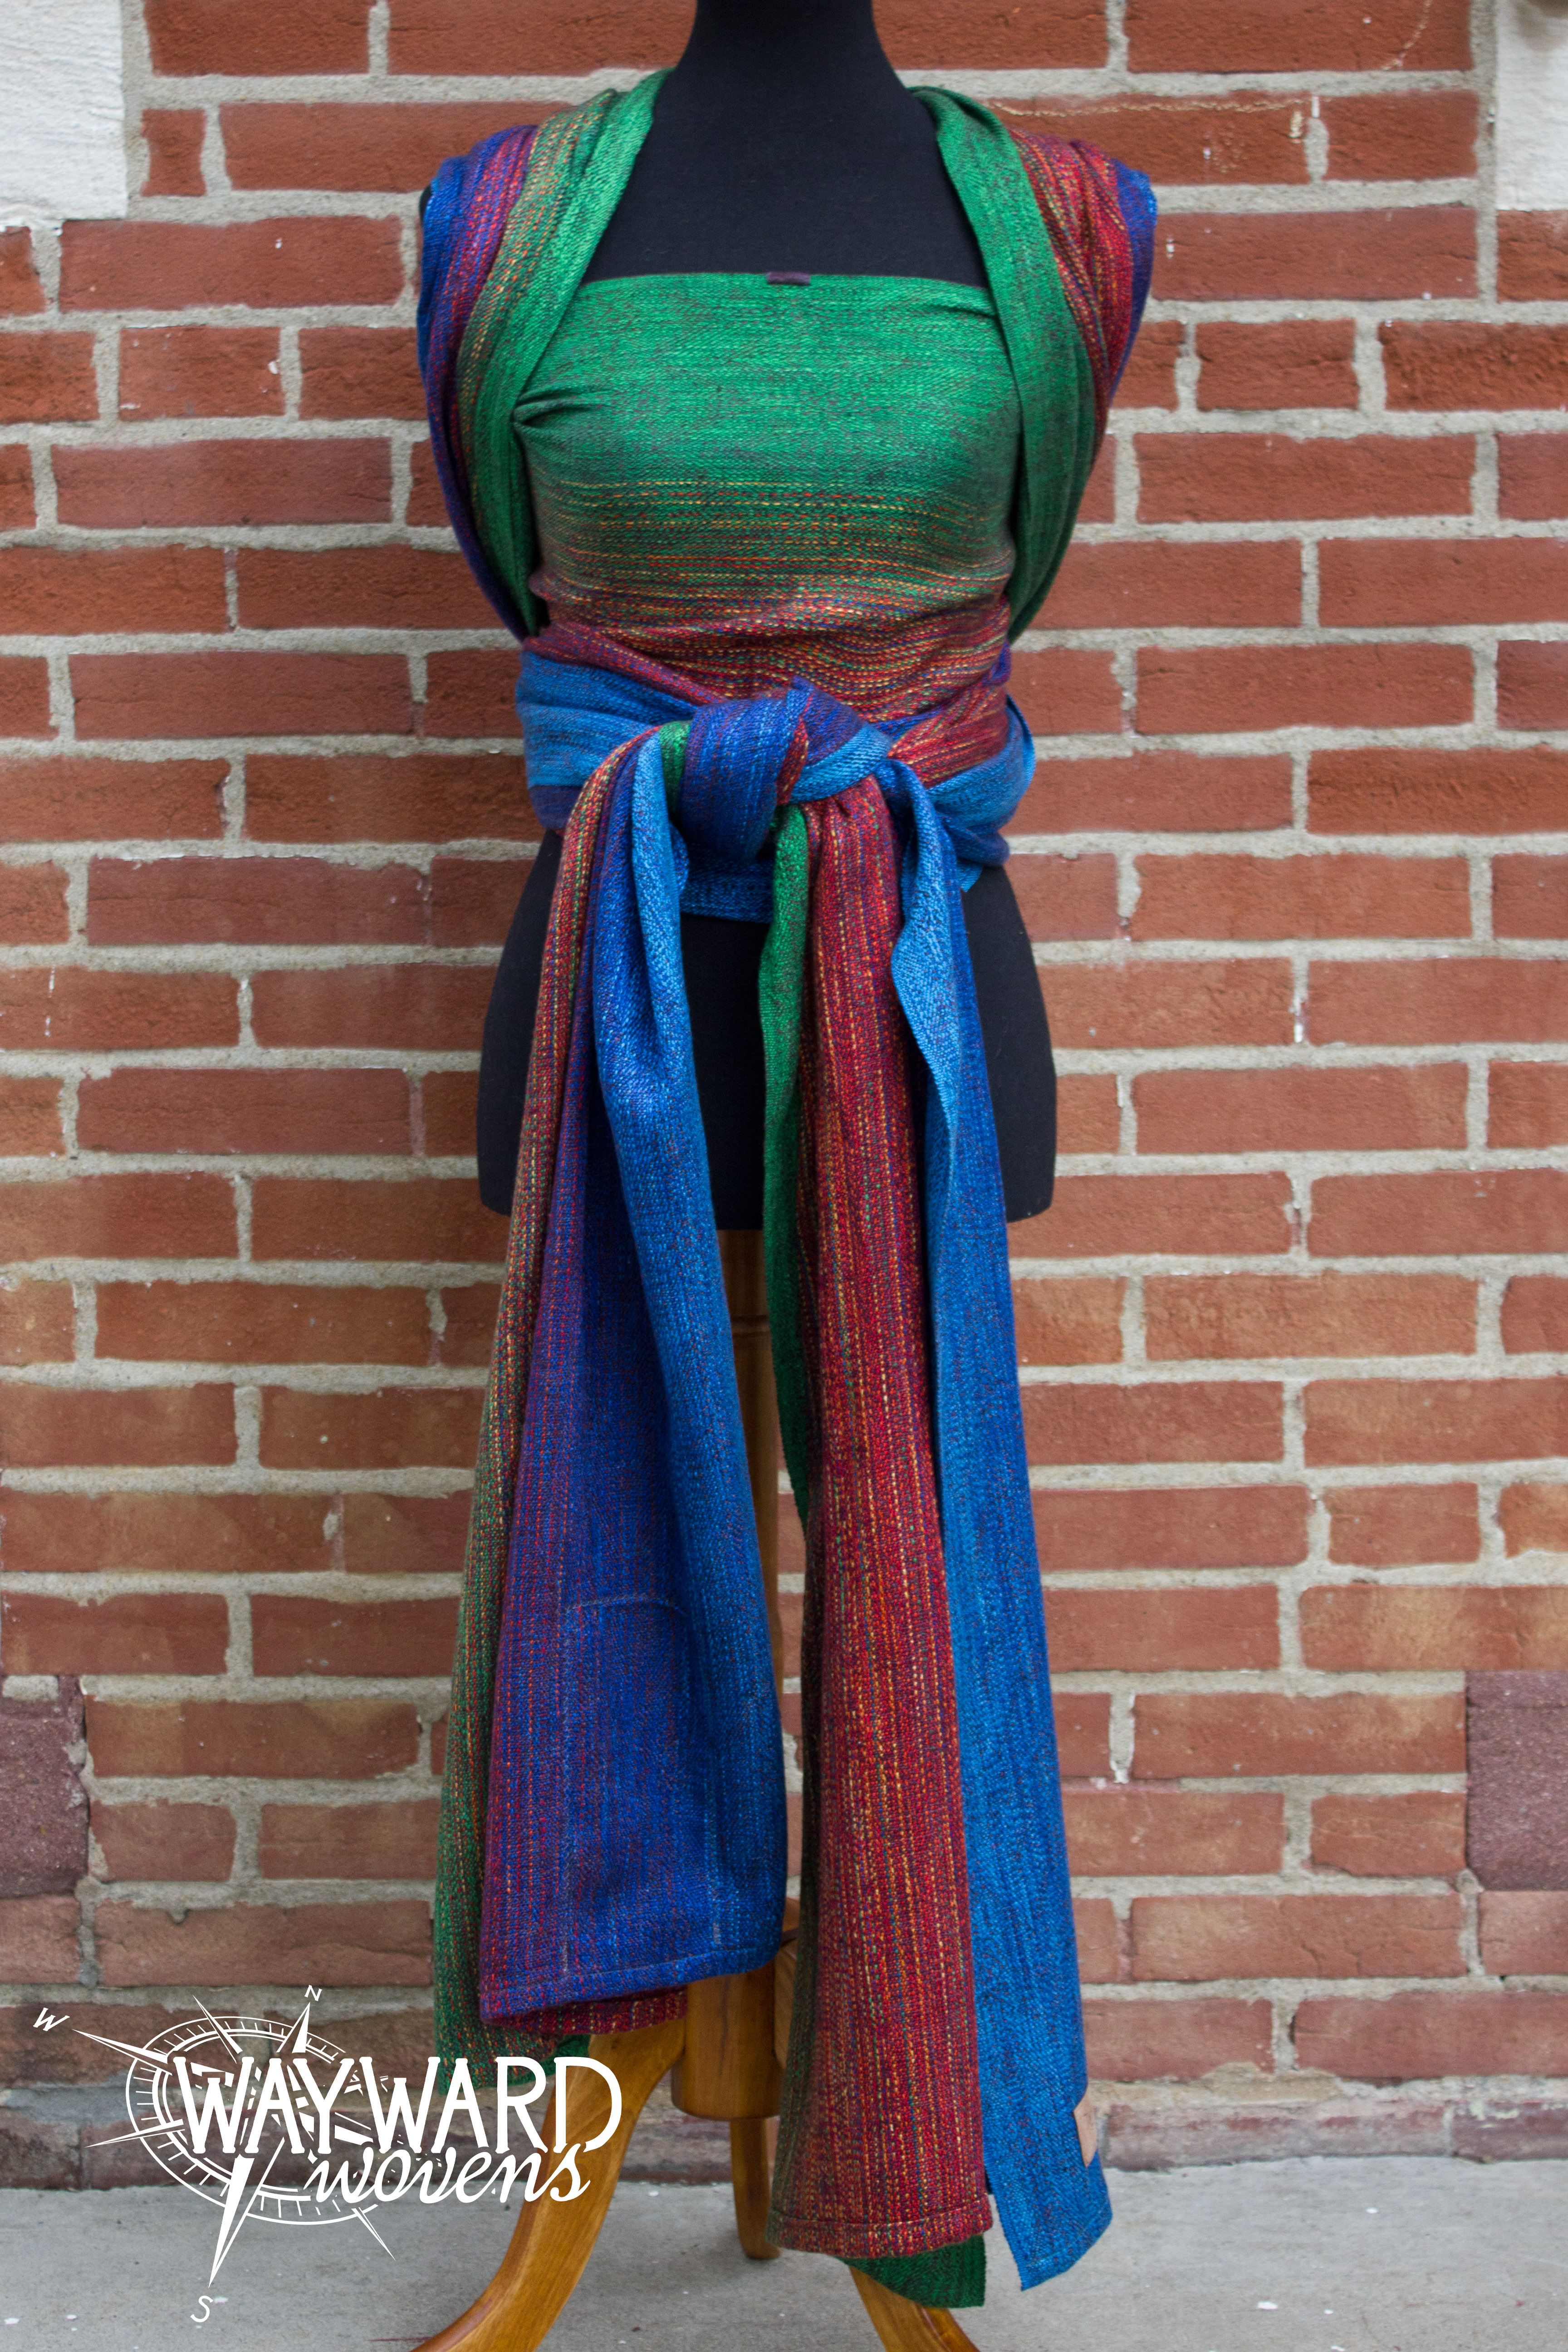 wrapped on mannequin